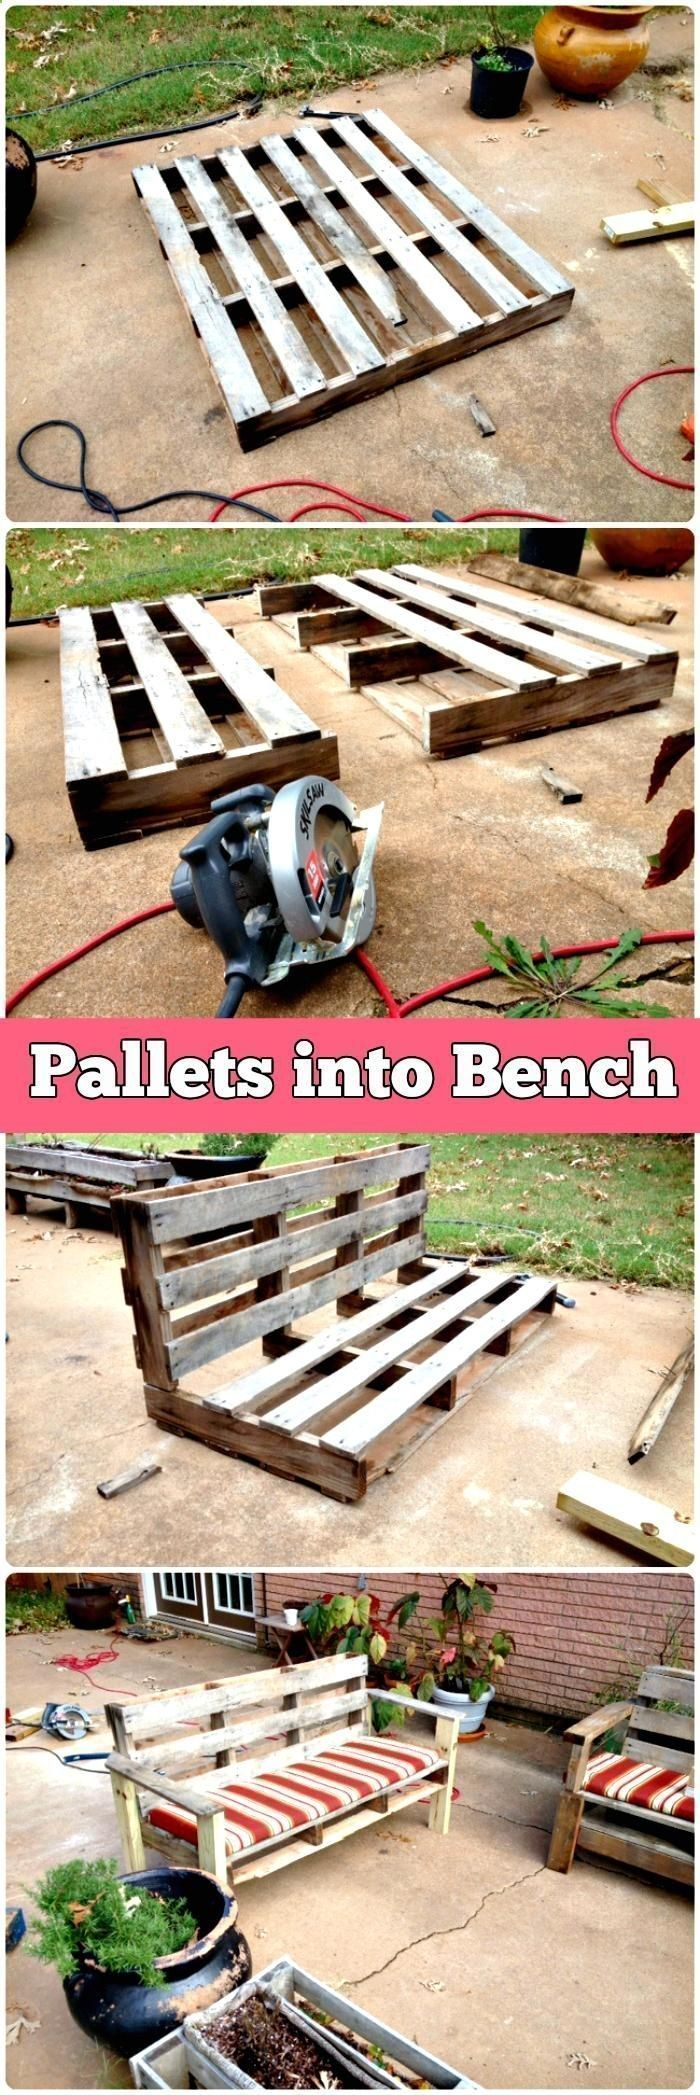 5 Easy Step DIY Transformation – Pallet into Outdoor Patio Bench - 150 Best DIY Pallet Projects and Pallet Furniture Crafts - Page 30 of 75 - DIY Crafts #palletfurniturebench #palletfurniturepatio #palletoutdoorfurniture #diyfurnitureoutdoor #palletfurniturediy #palletprojects #palletfurnitureeasy